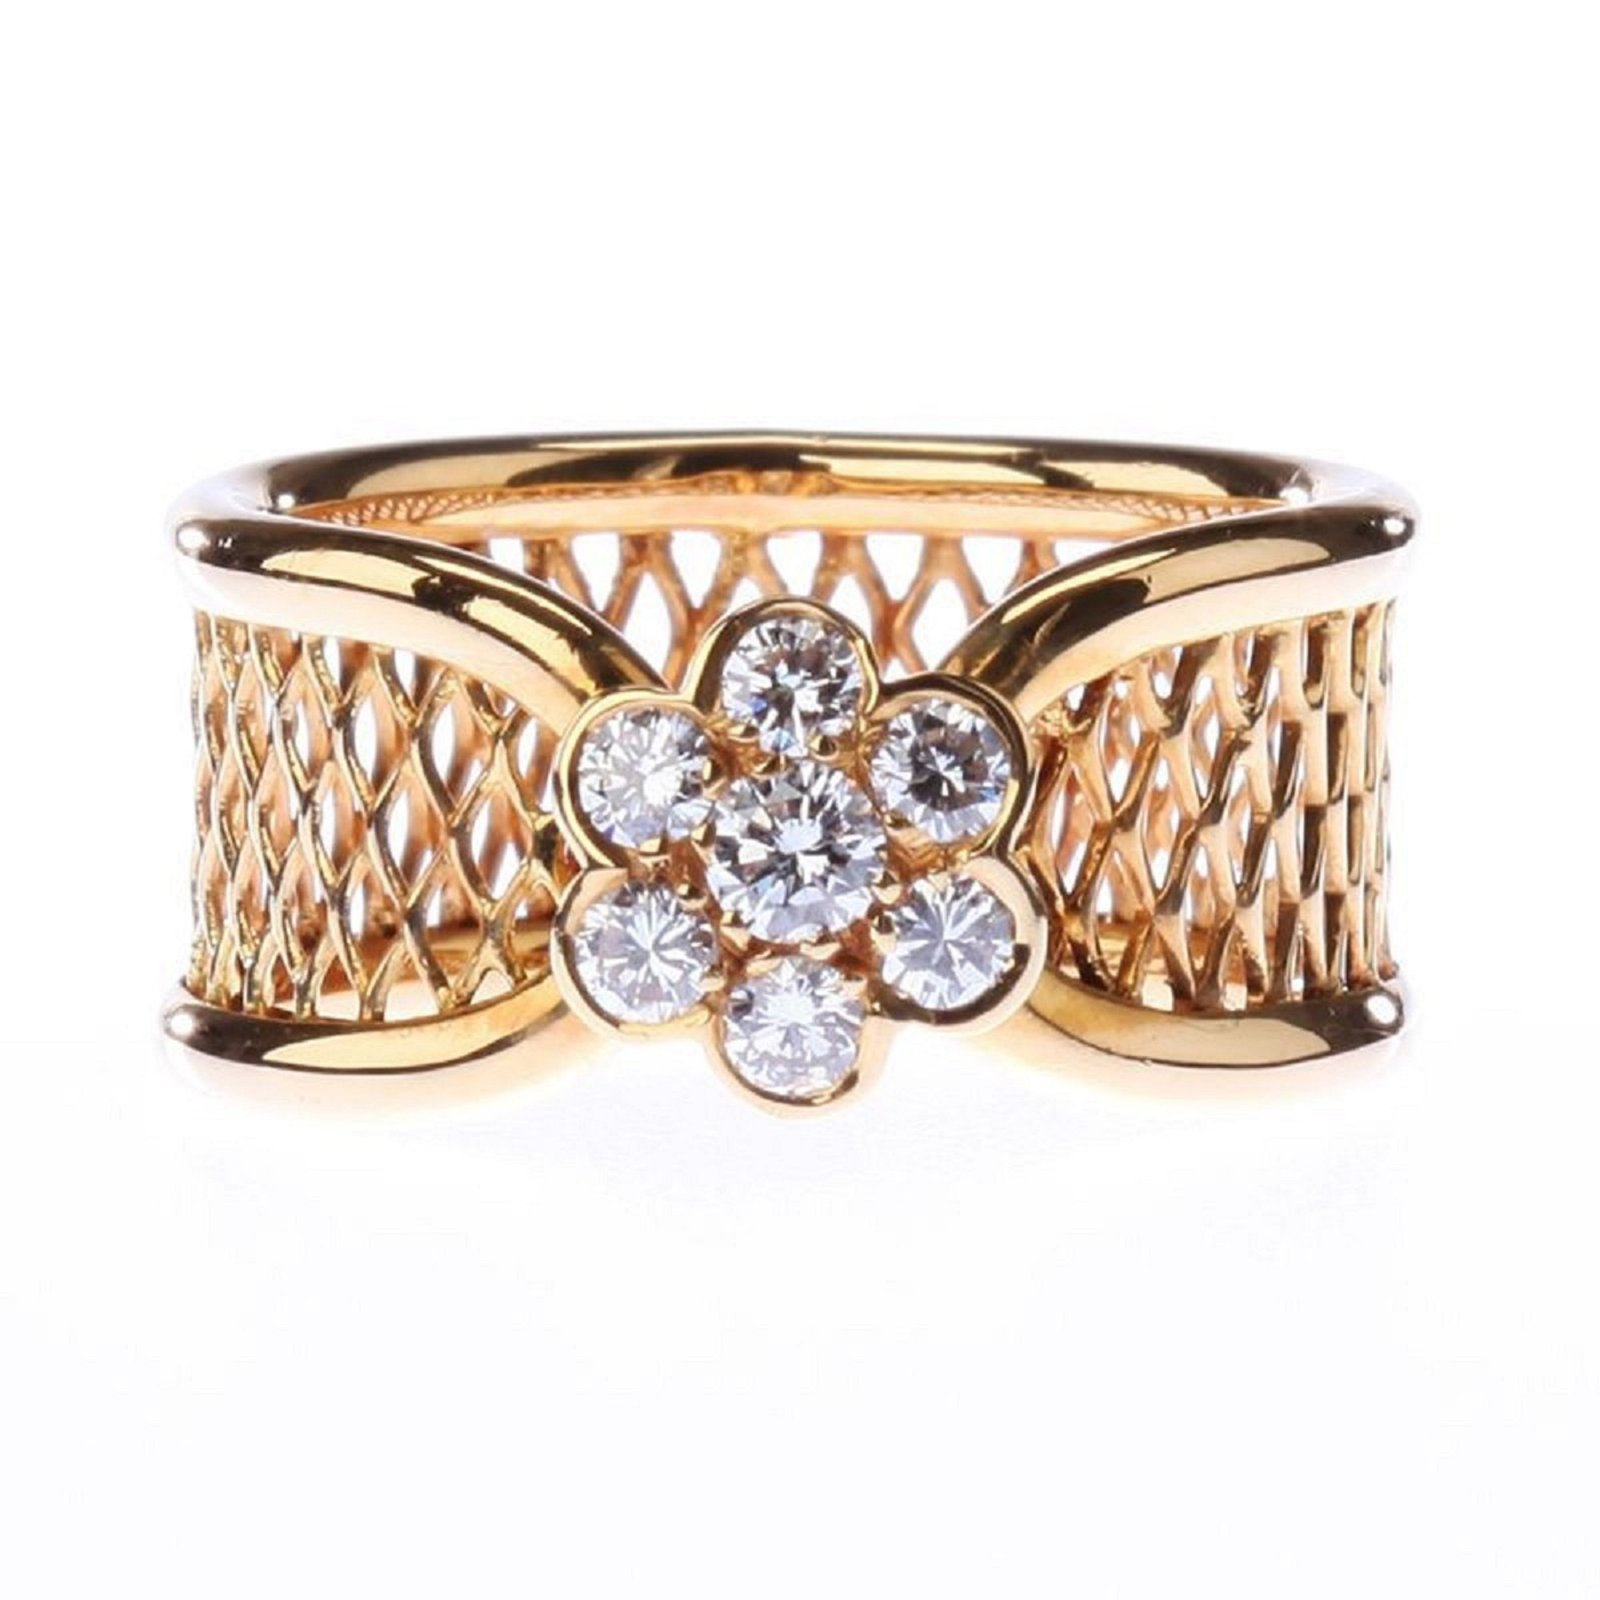 european june design cut intricate vintage products engagement dana band rings diamond ken unique basket s old round hamma with